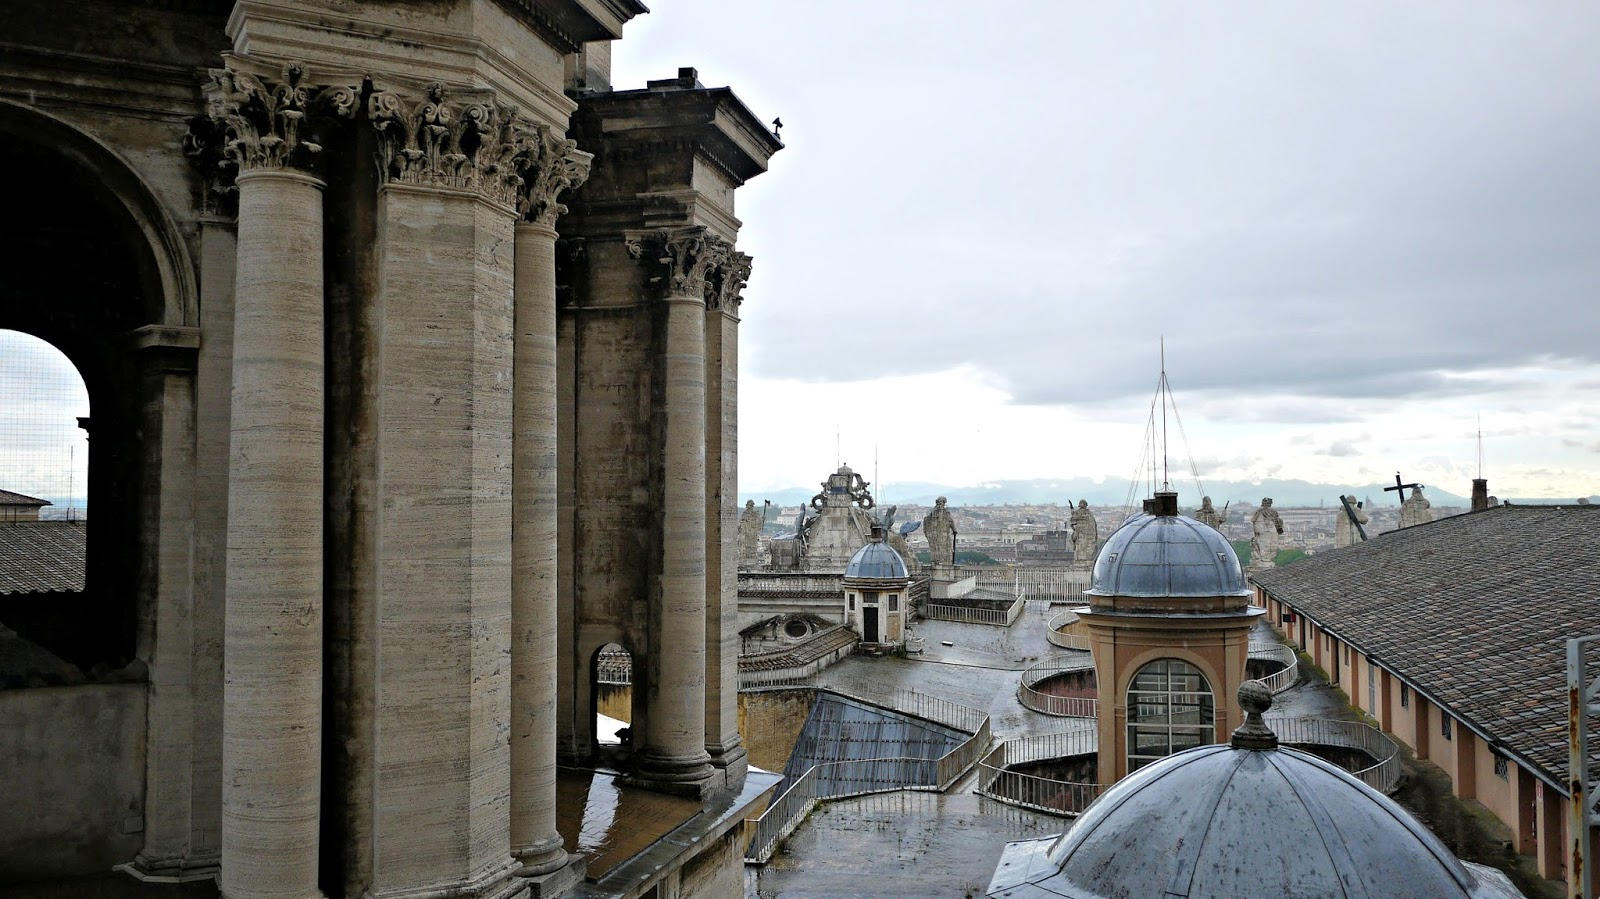 St Peter's Basilica Dome